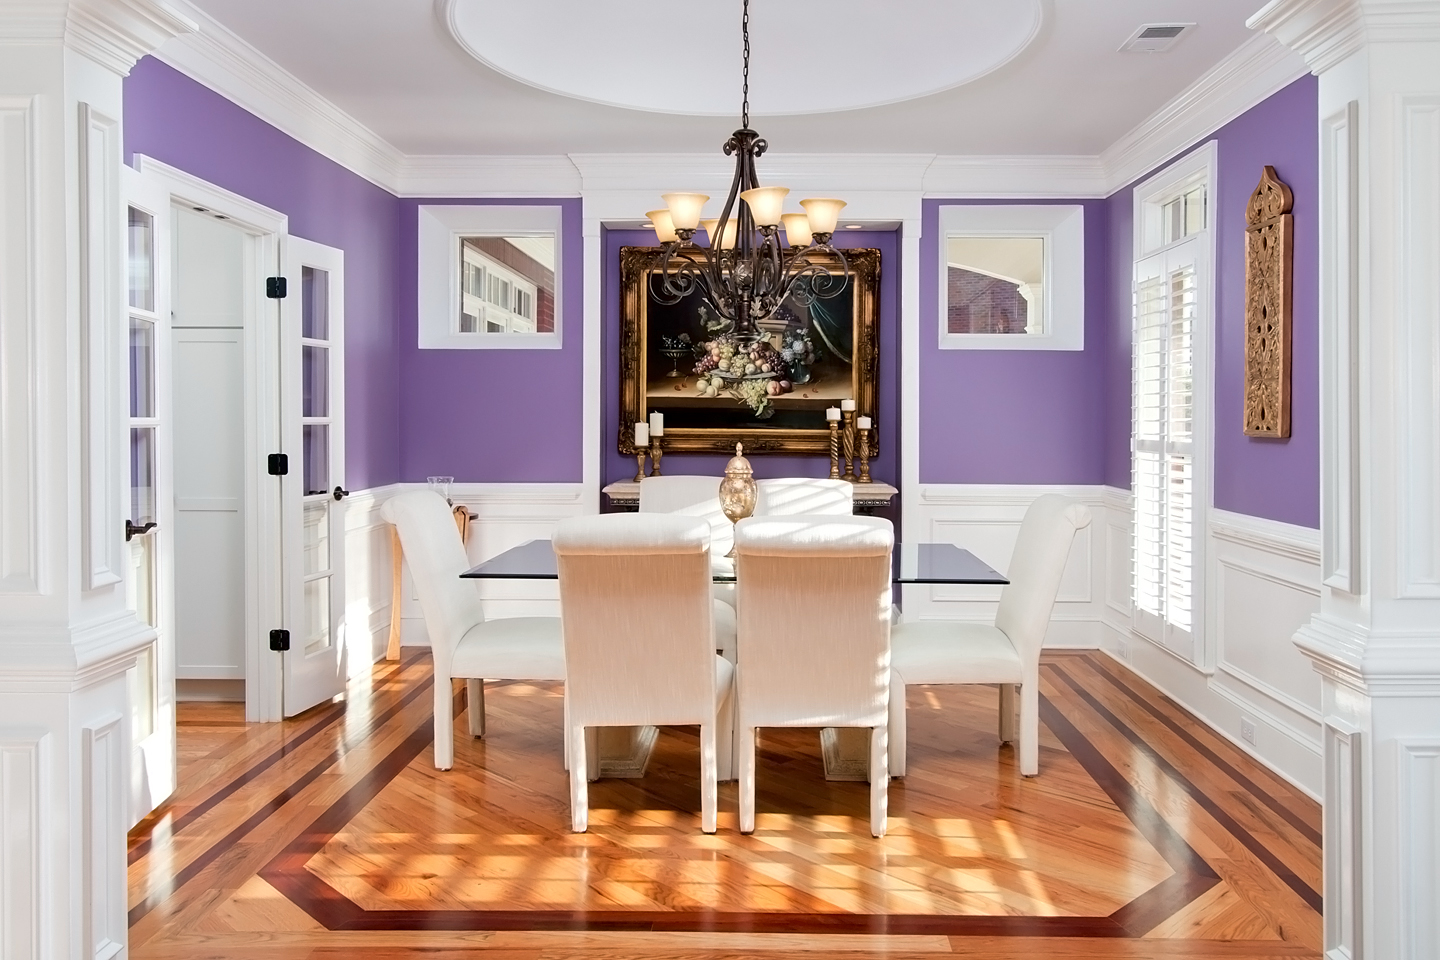 Interior Real Estate Photo Of Formal Dining Room In Marietta Home